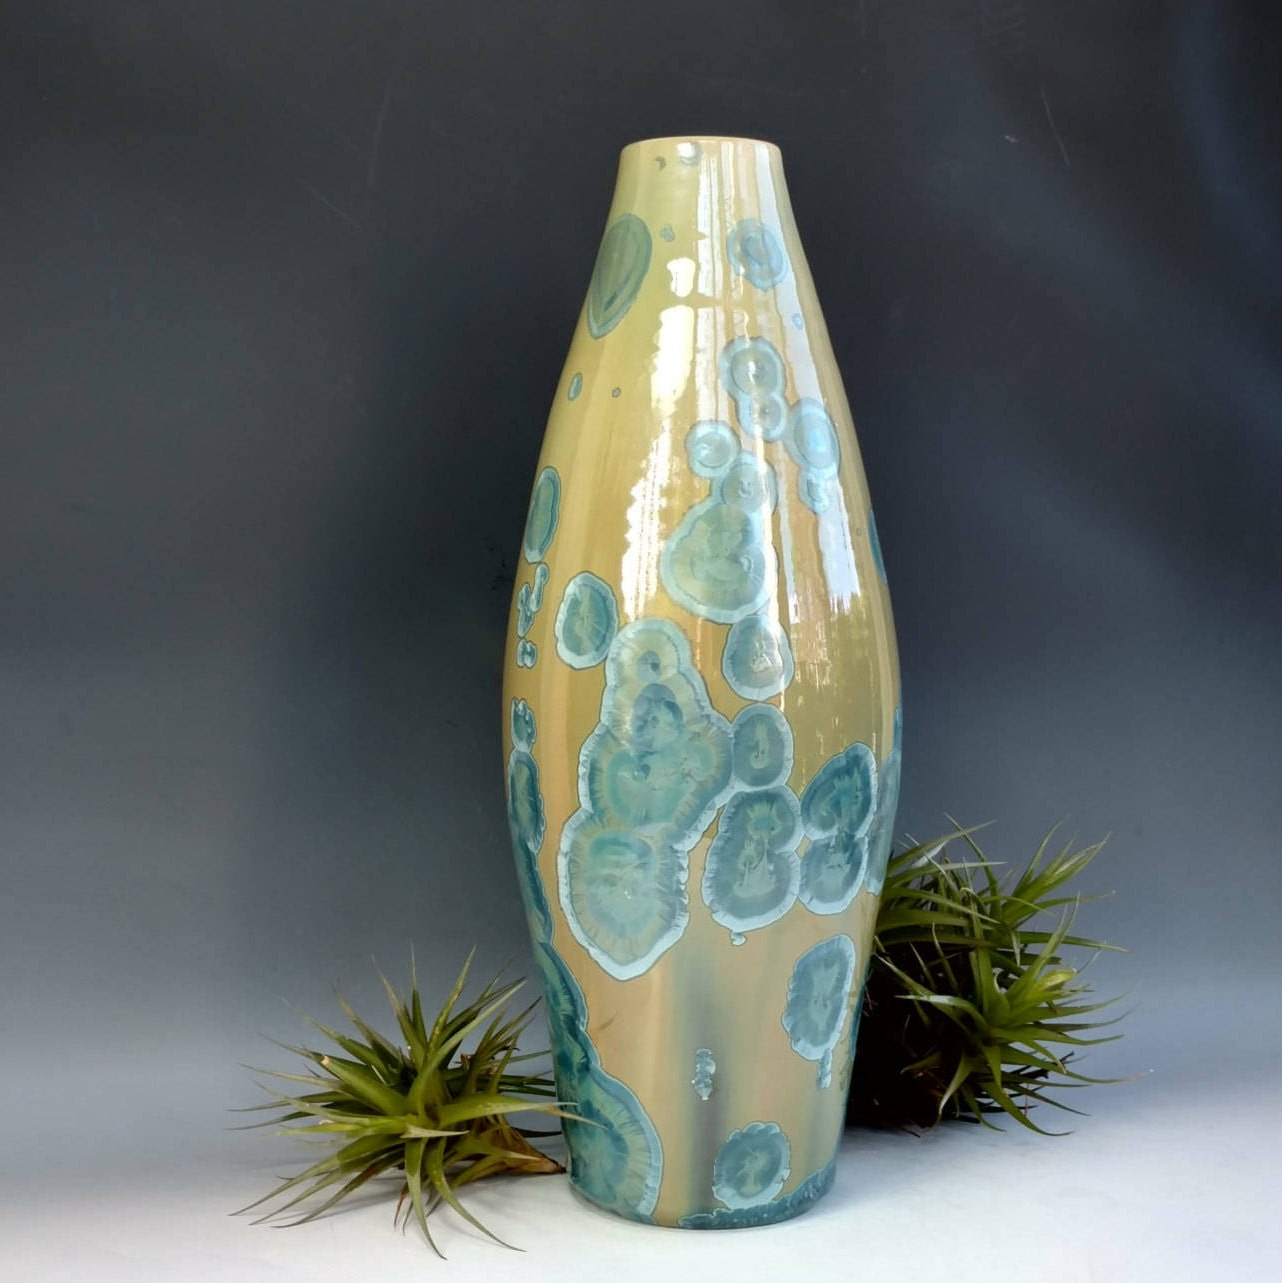 Tall turquoise ceramic vase large handmade green blue bottle tall turquoise ceramic vase large handmade green blue bottle crystalline glaze pottery gift bedroom home office decor 135 tall reviewsmspy